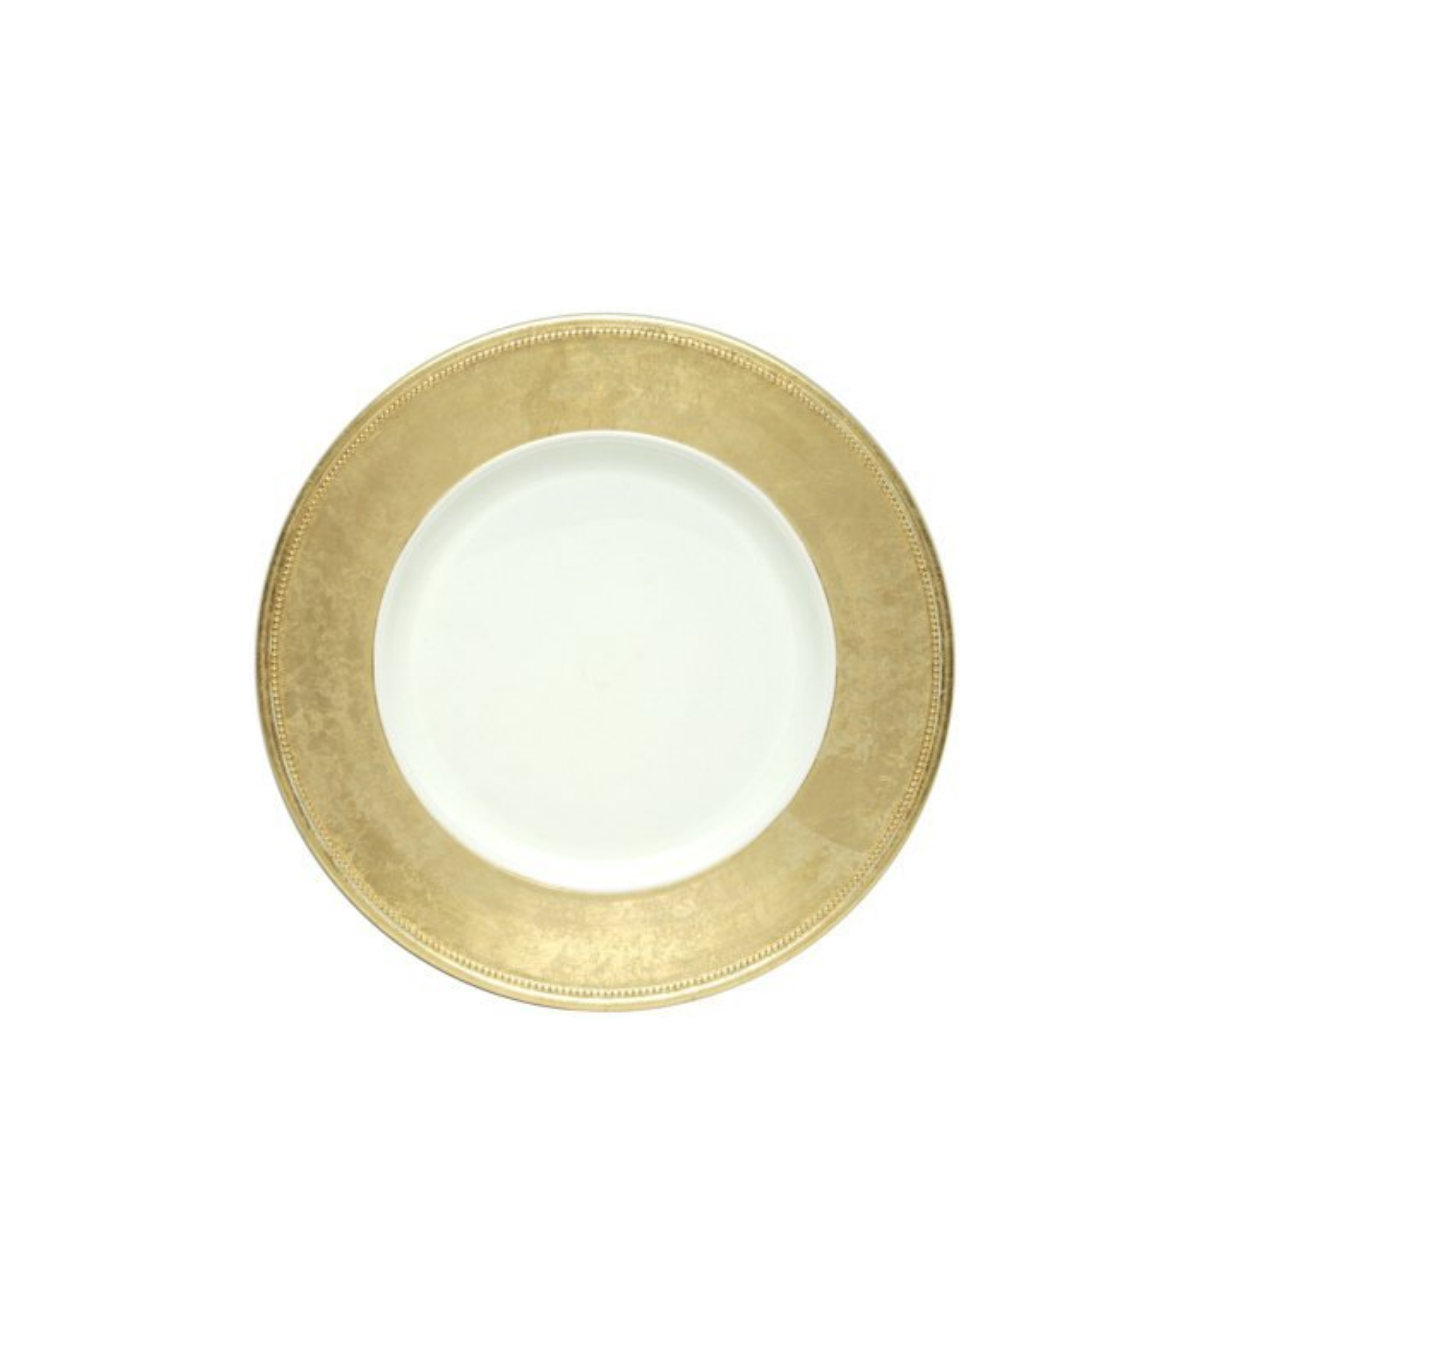 Gold Rim Charger Plates, Set of 4